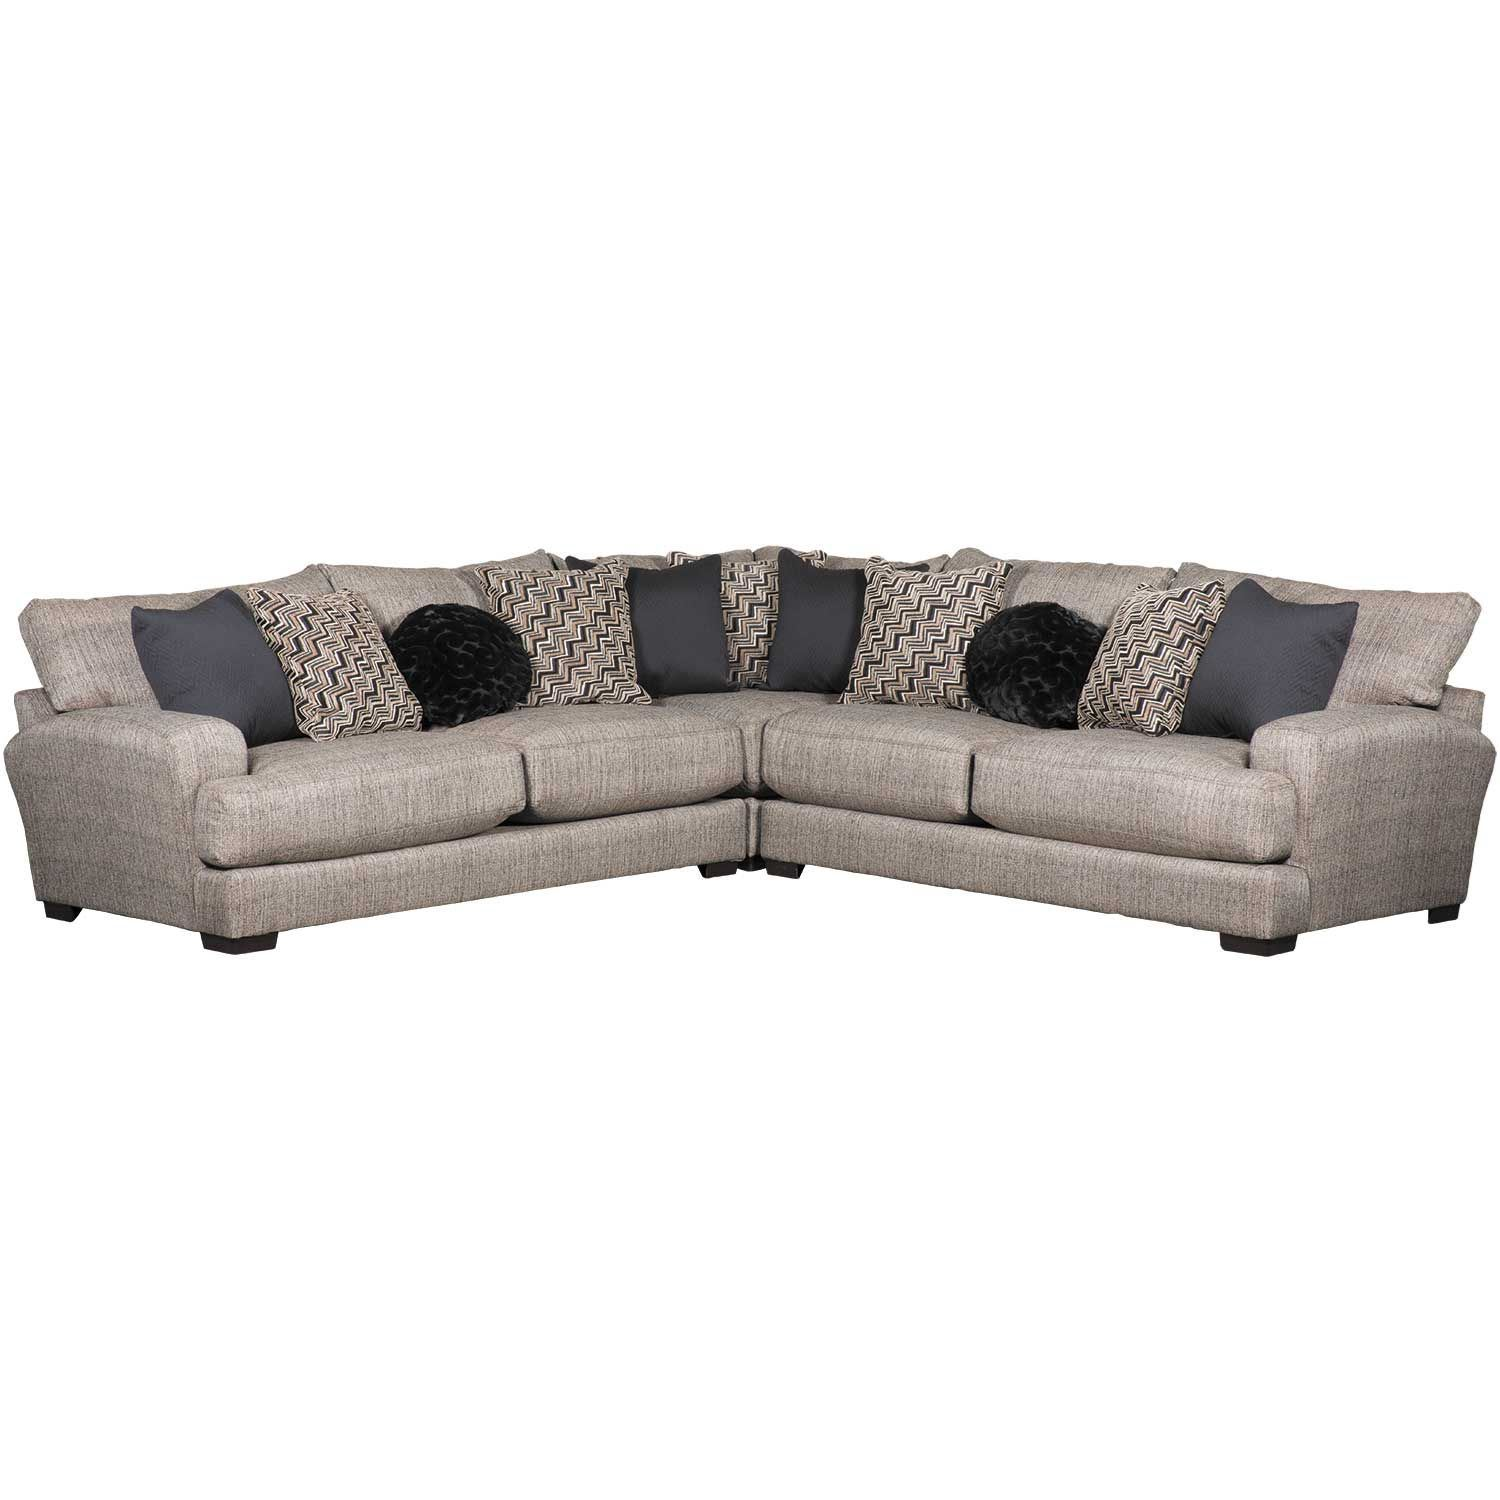 Picture of Ava Pepper 3 Piece Sectional with USB Charging Ports